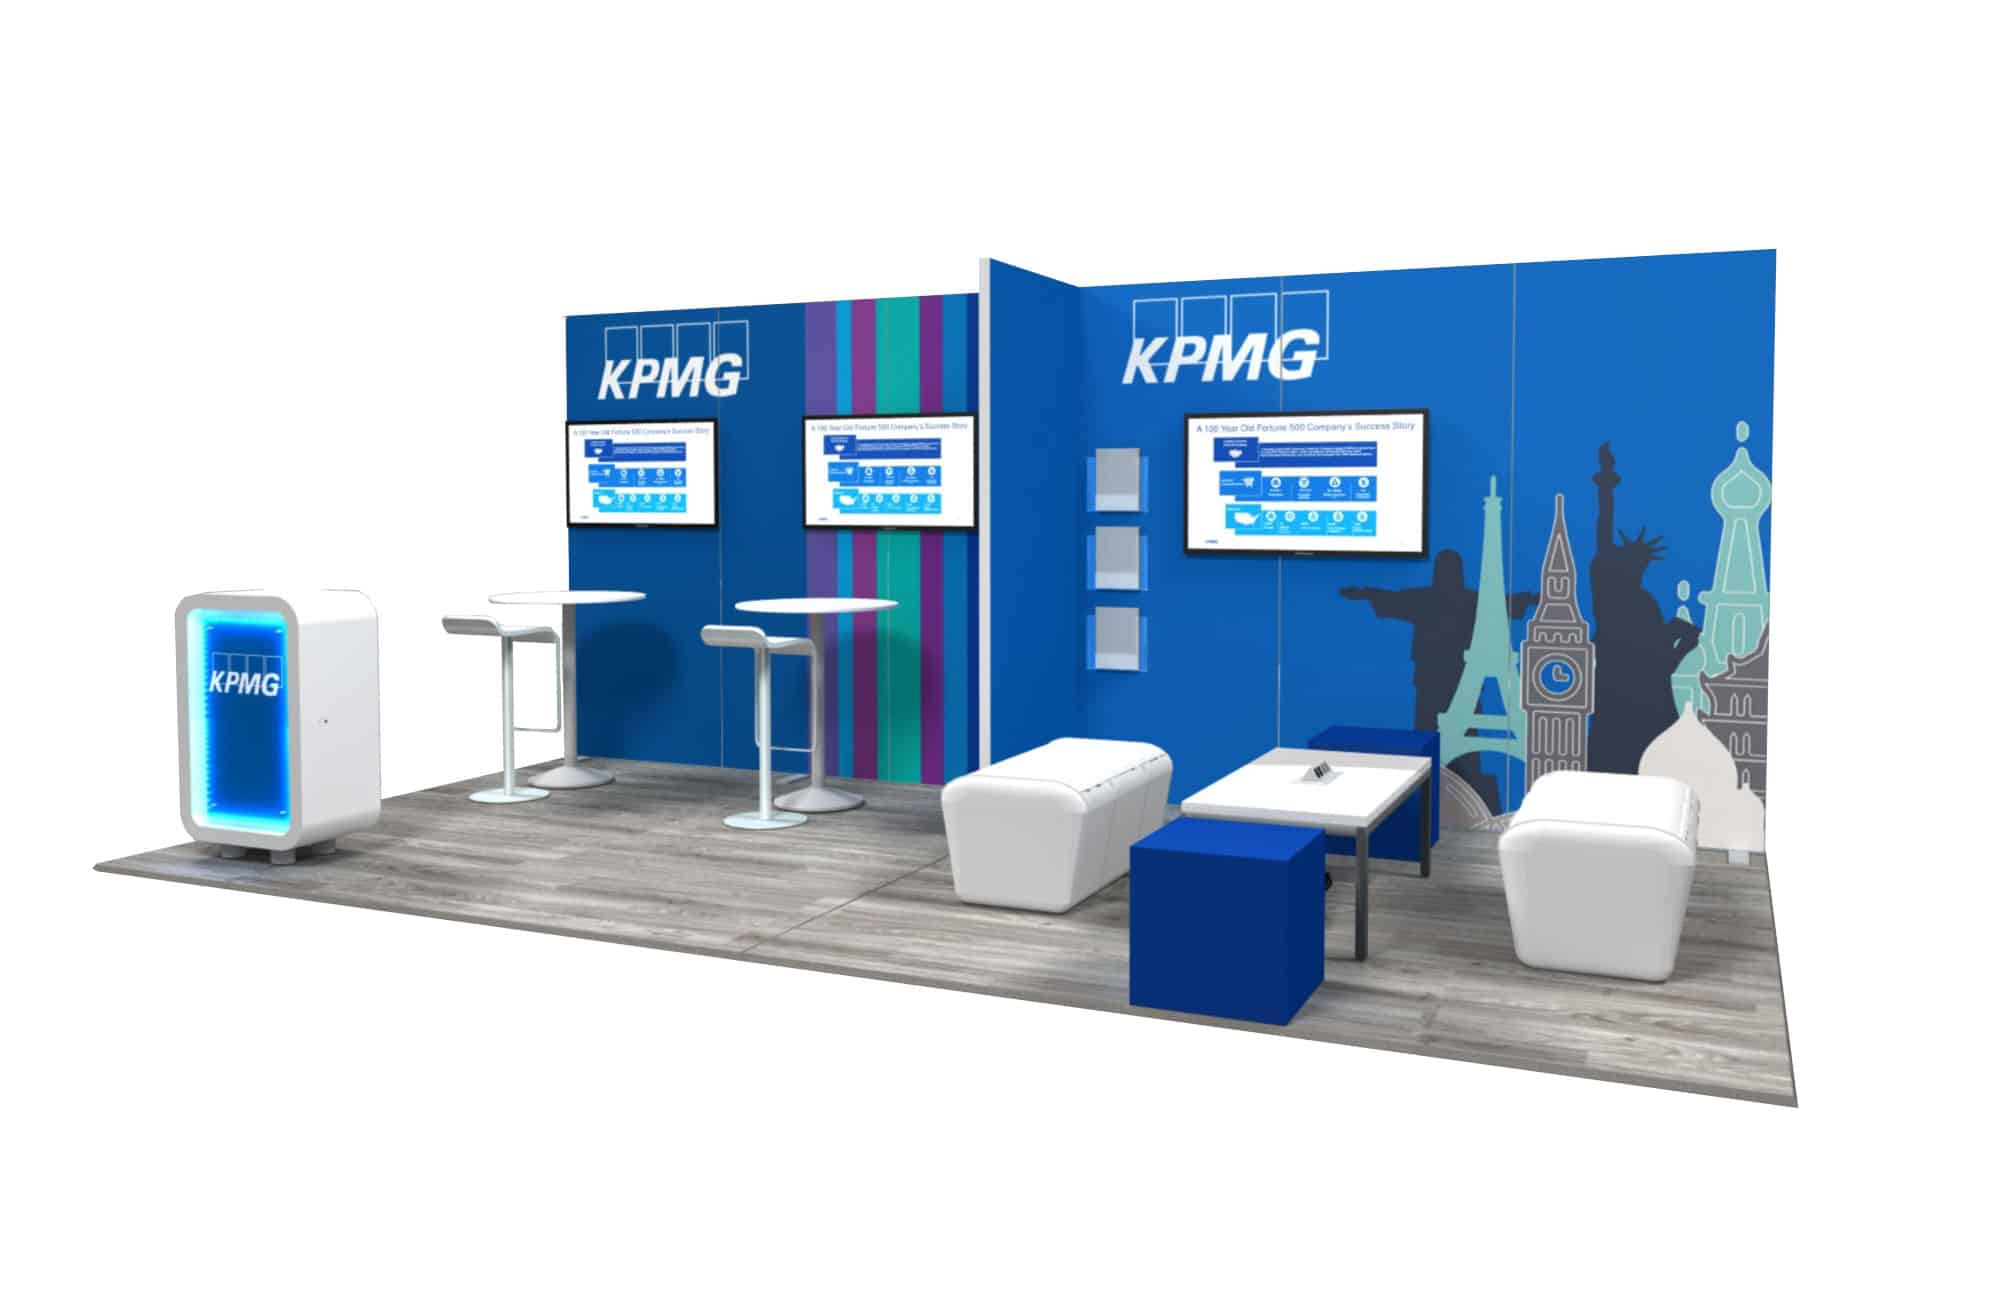 10x20 Trade Show Booth Rental Kpmg